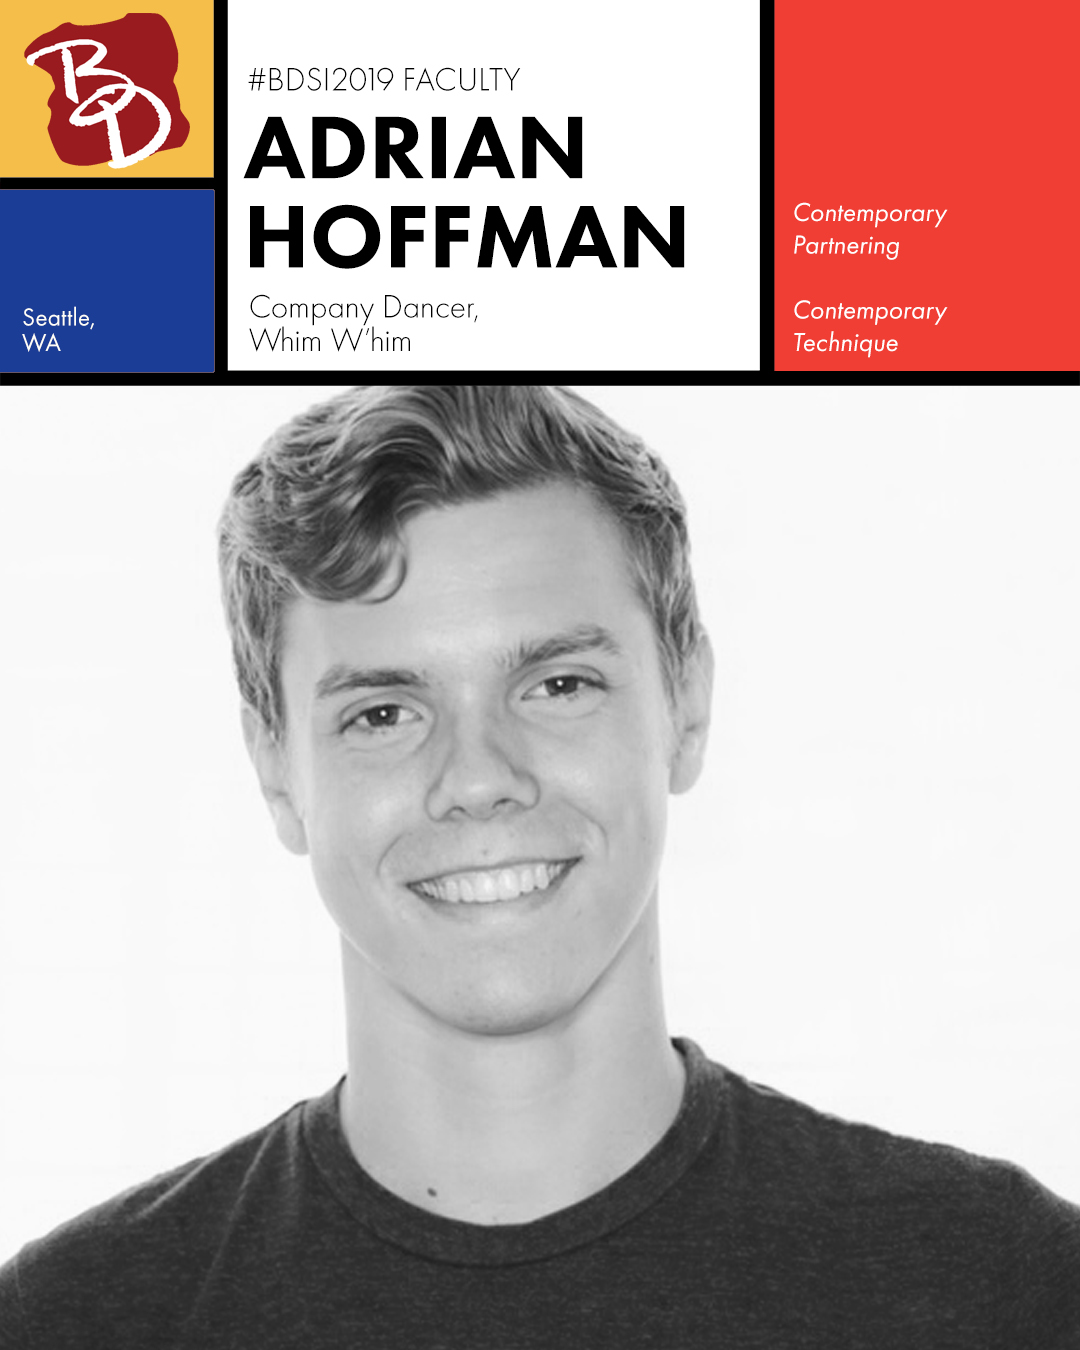 Faculty Announcement - Hoffman Adrian.jpg